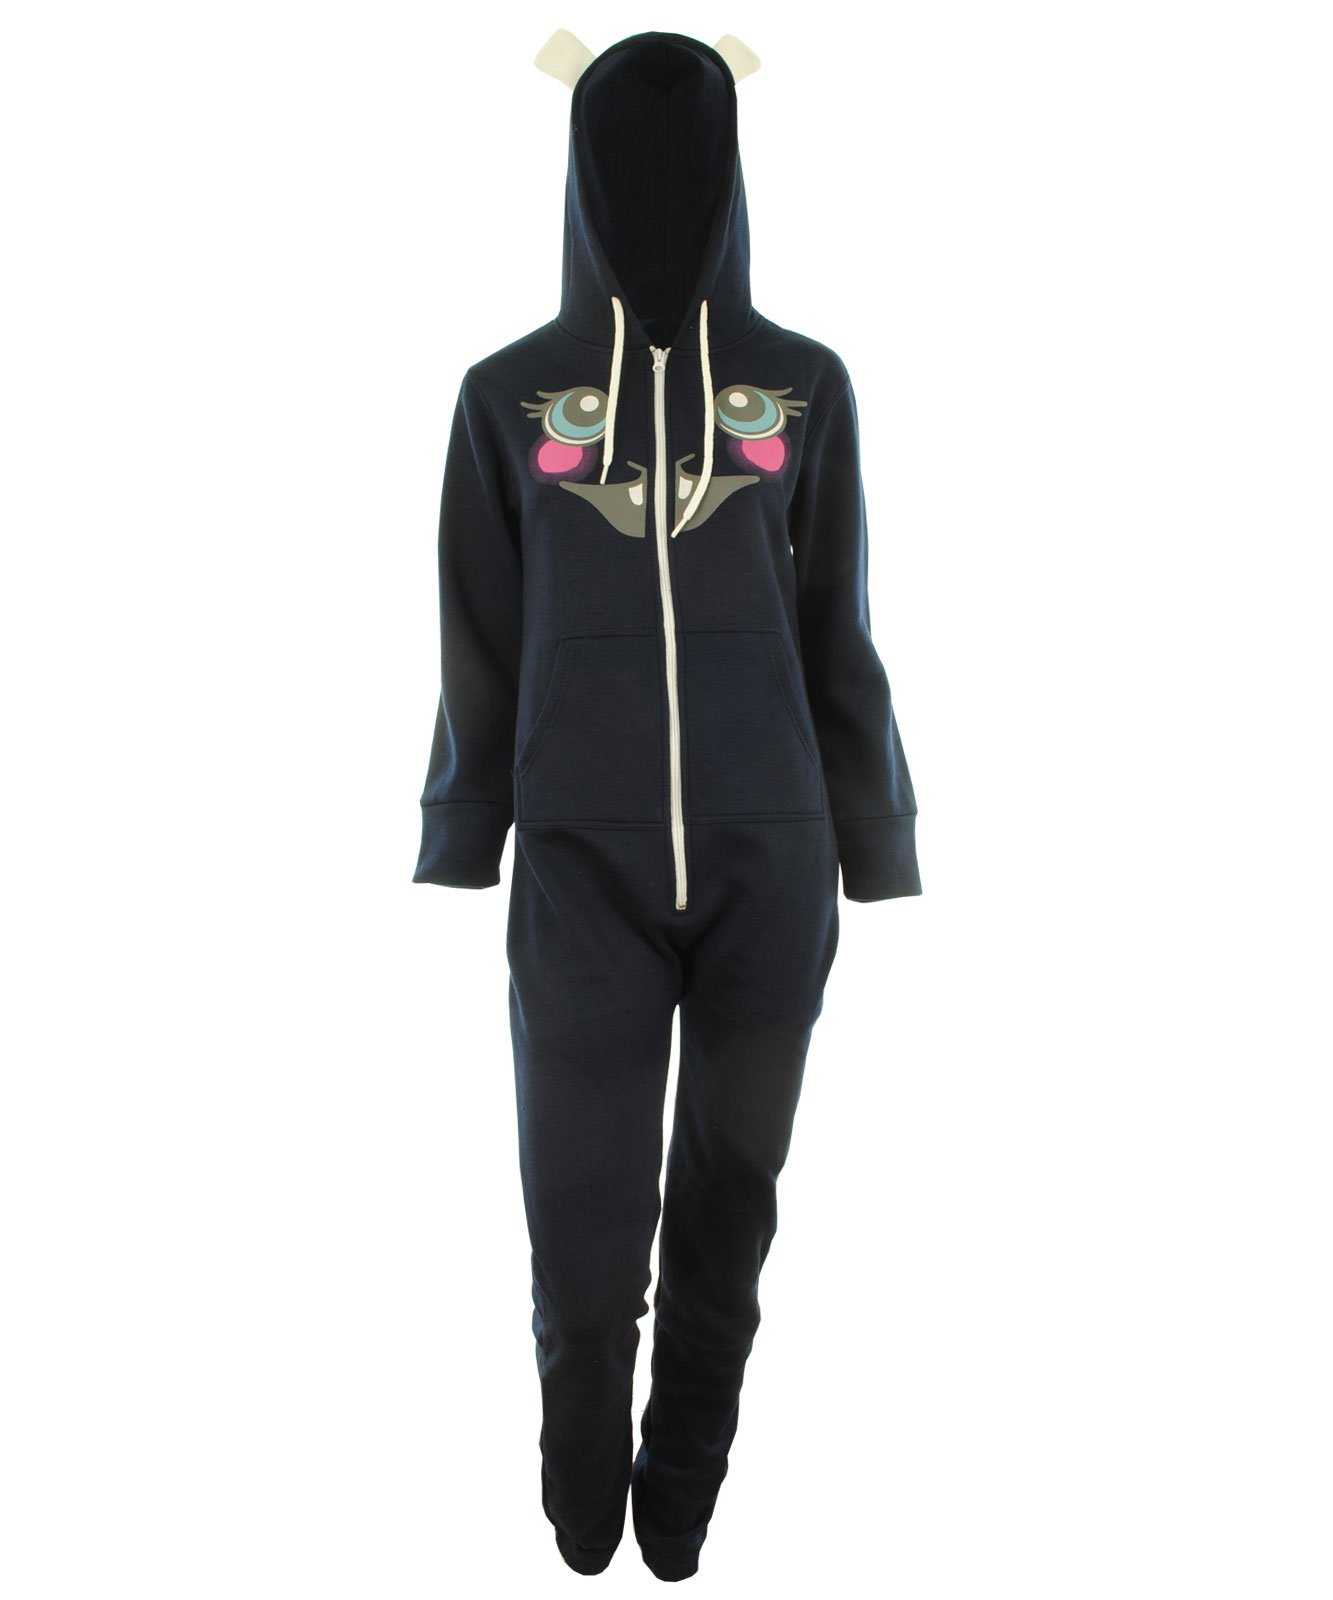 GG Womens Kirnea Unisex Easter Bunny Hooded Jumpsuit Onesie